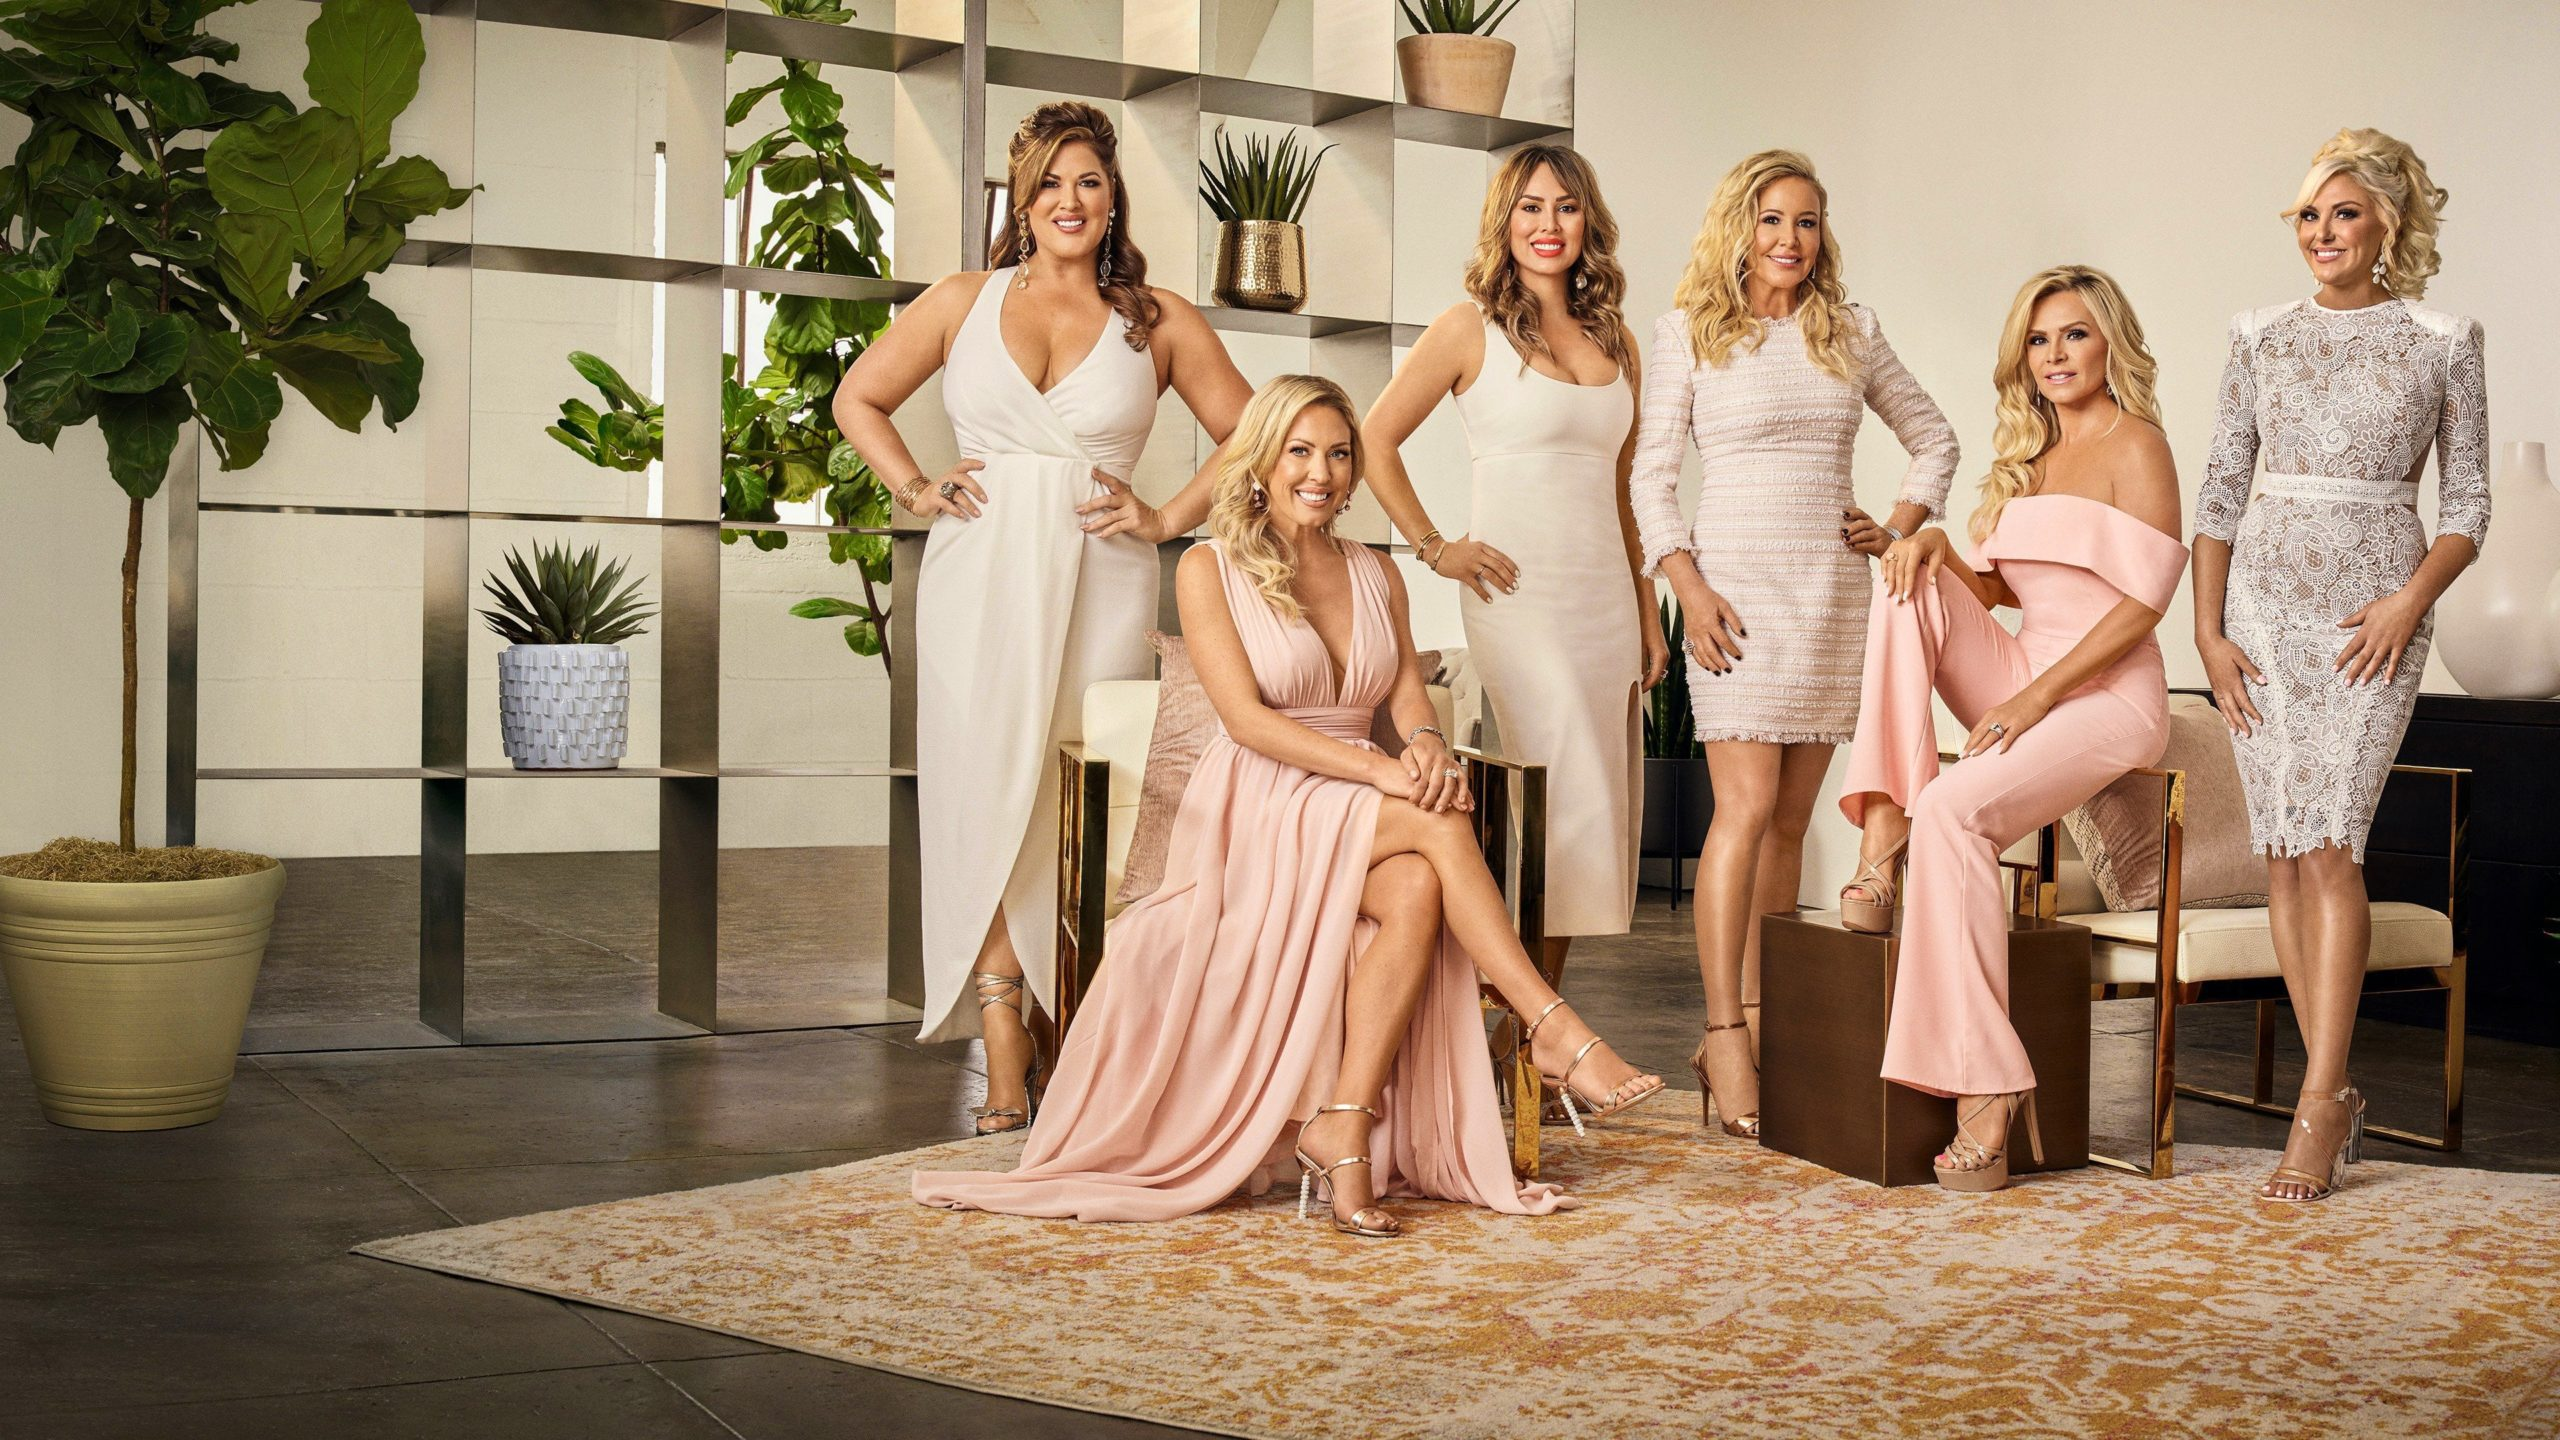 The Real Housewives of Orange County Season 15 Episode 1